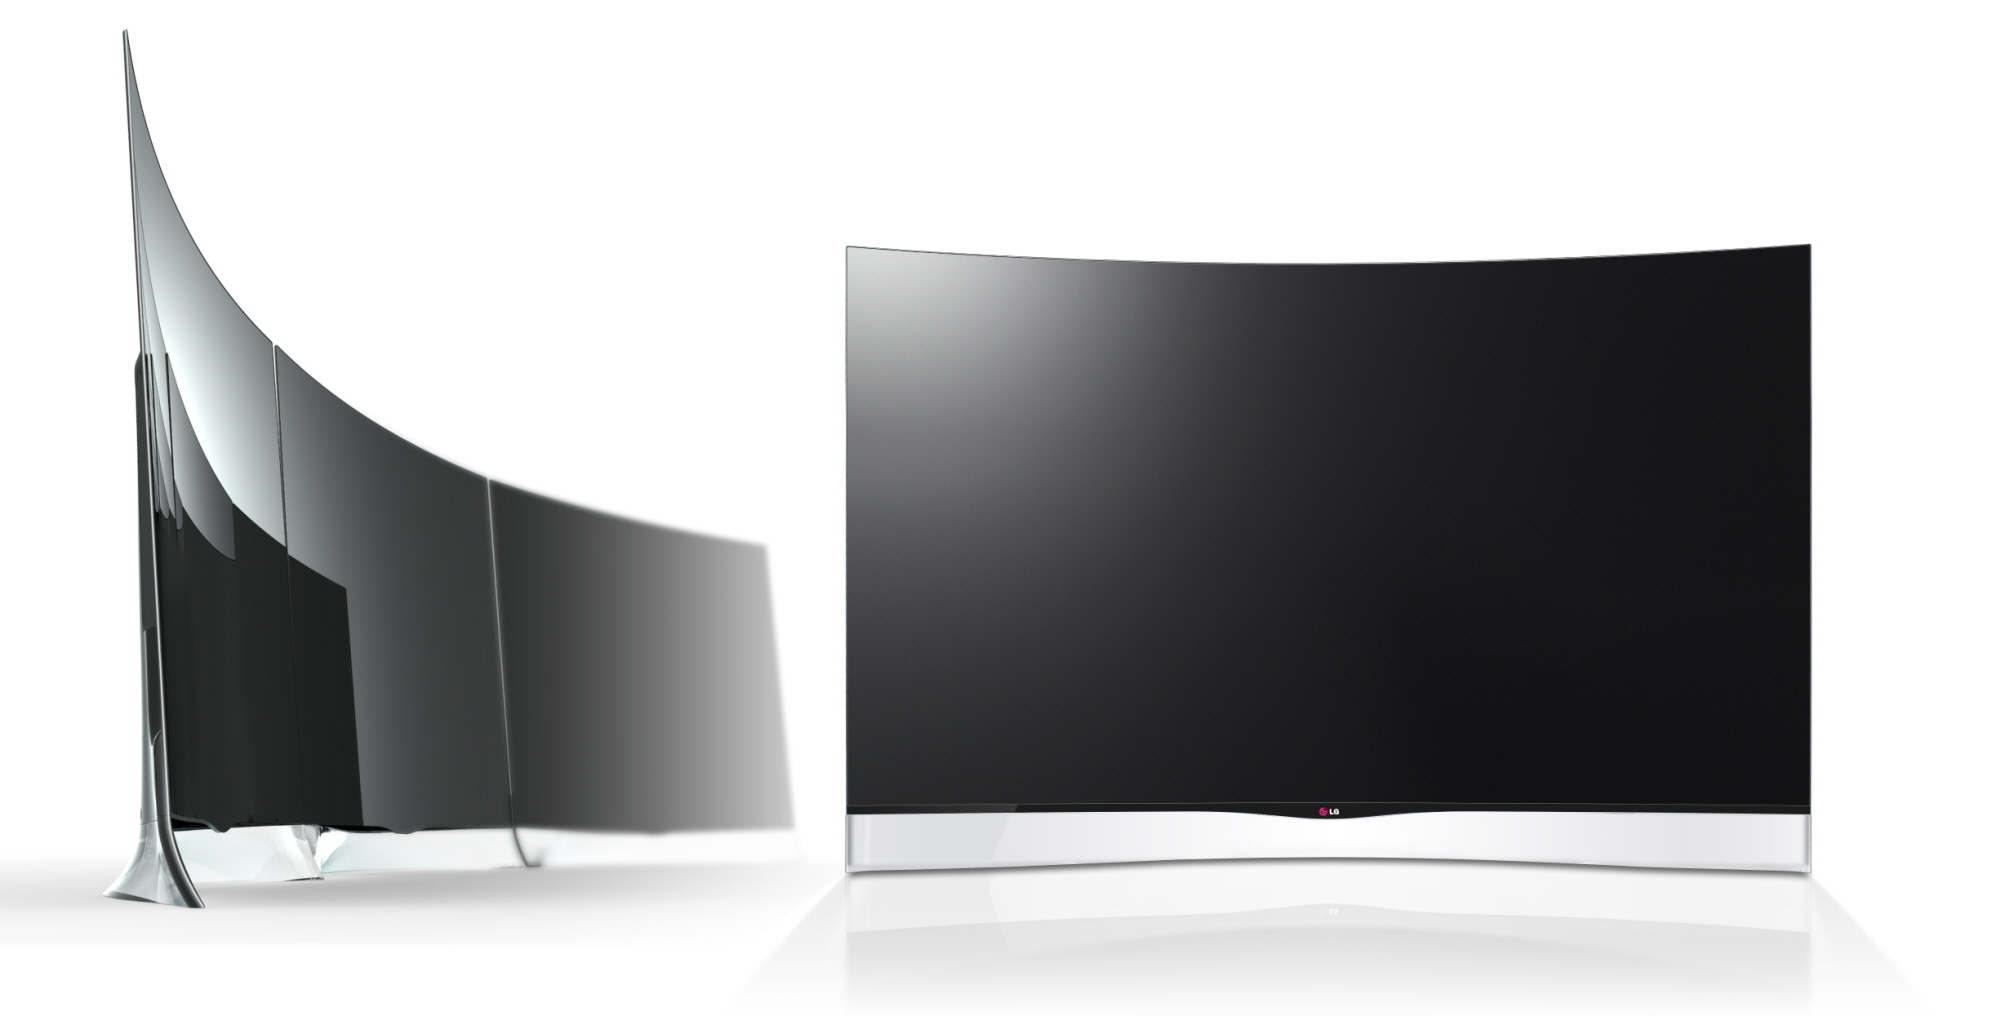 lg starts taking pre orders for world 39 s first curved oled tv to ship venturebeat gadgets. Black Bedroom Furniture Sets. Home Design Ideas